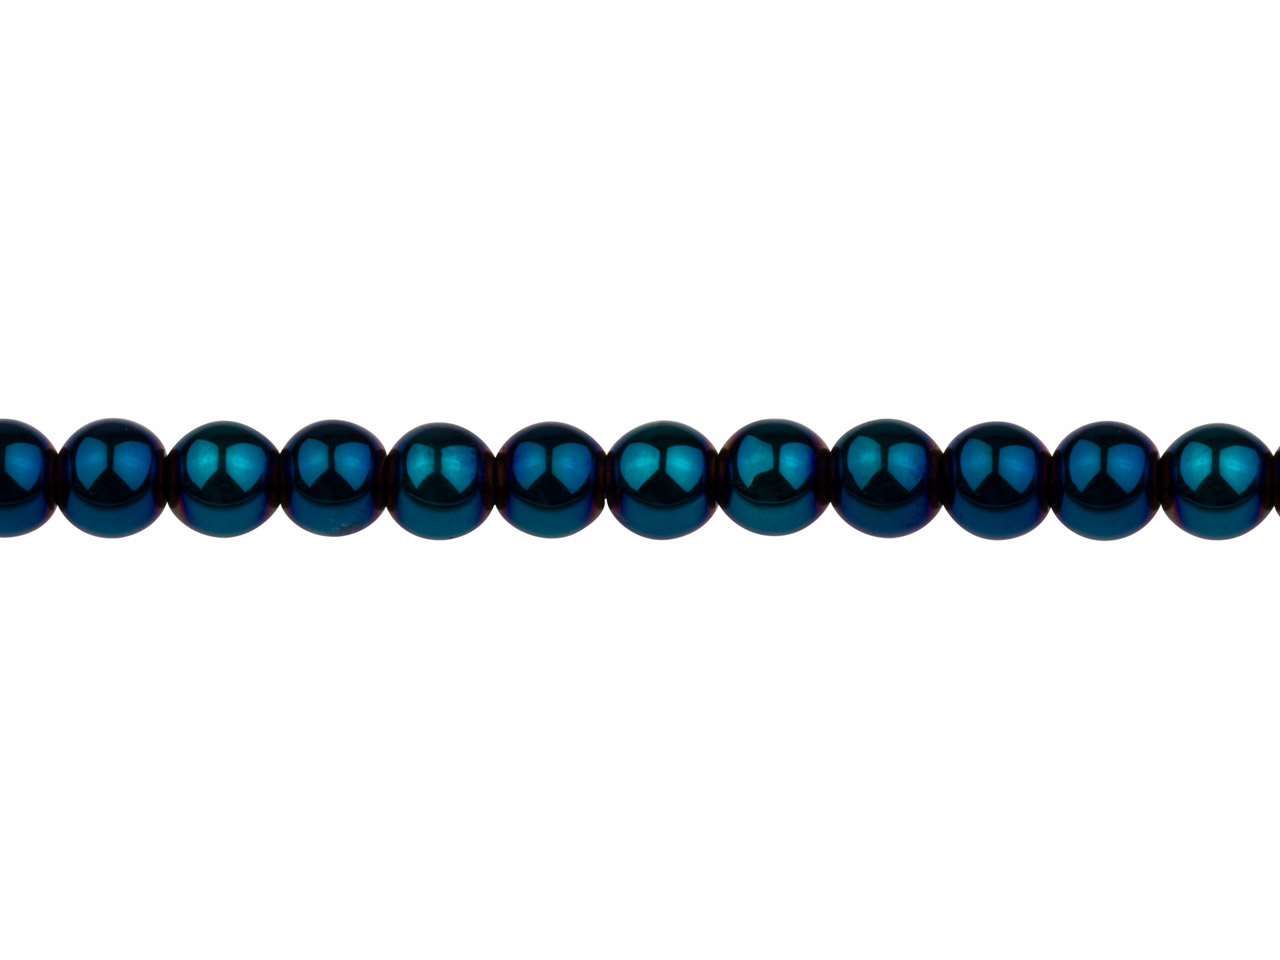 Electroplated Hematite Semi        Precious Round Beads, Blue, 6mm,   16